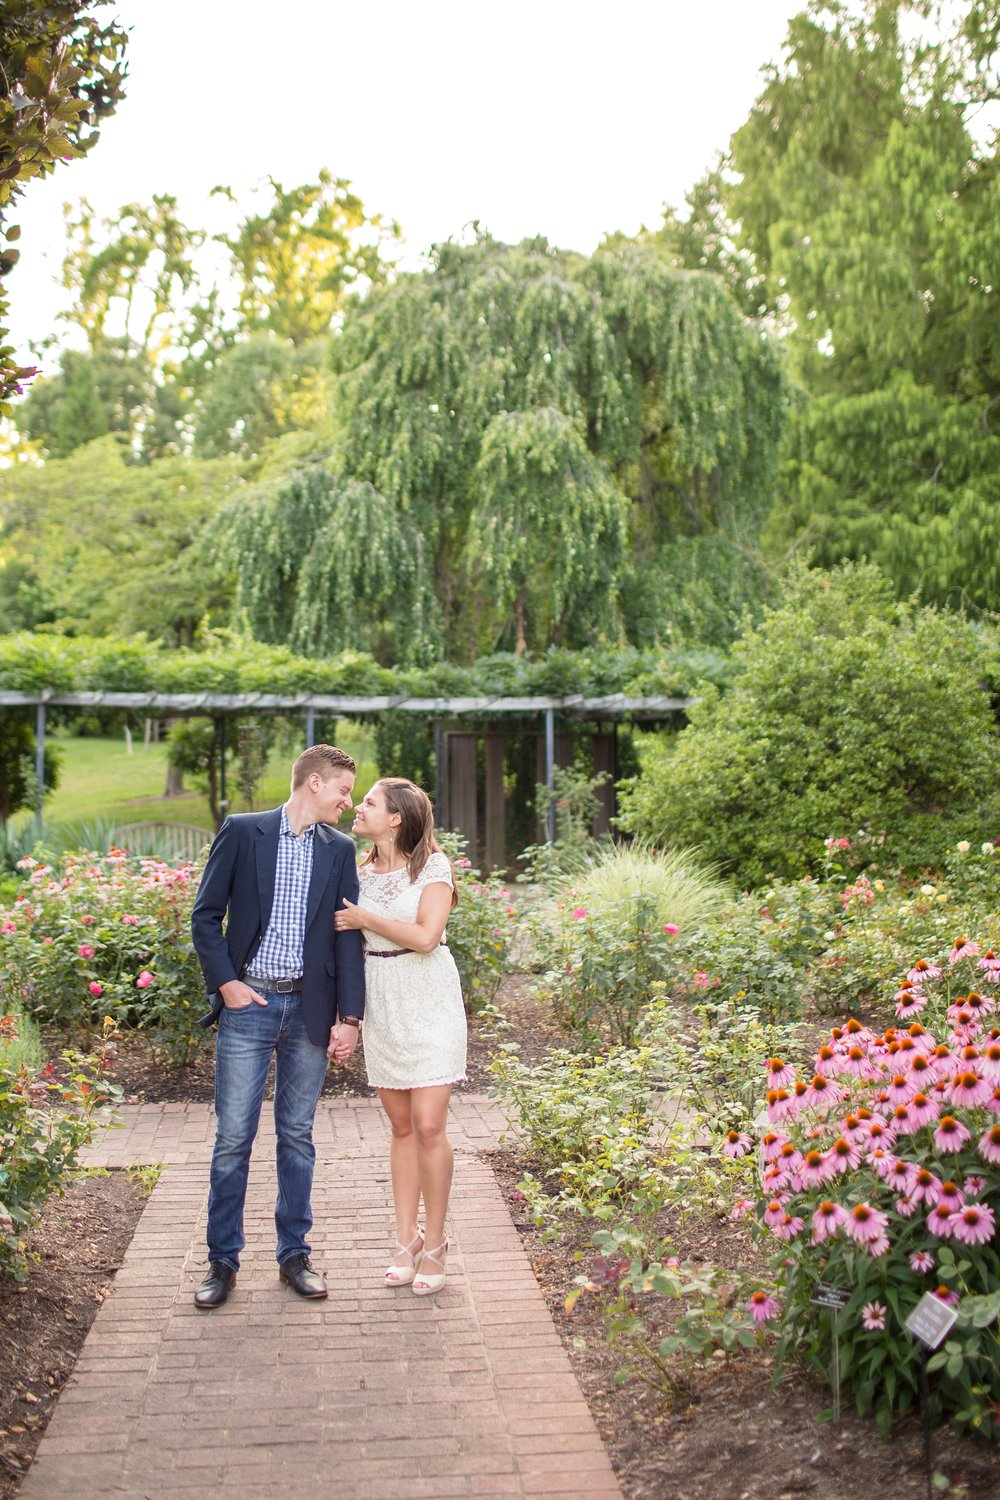 Clare & Nick Engagement-168_anna grace photography brookside gardens maryland engagement photographer photo.jpg